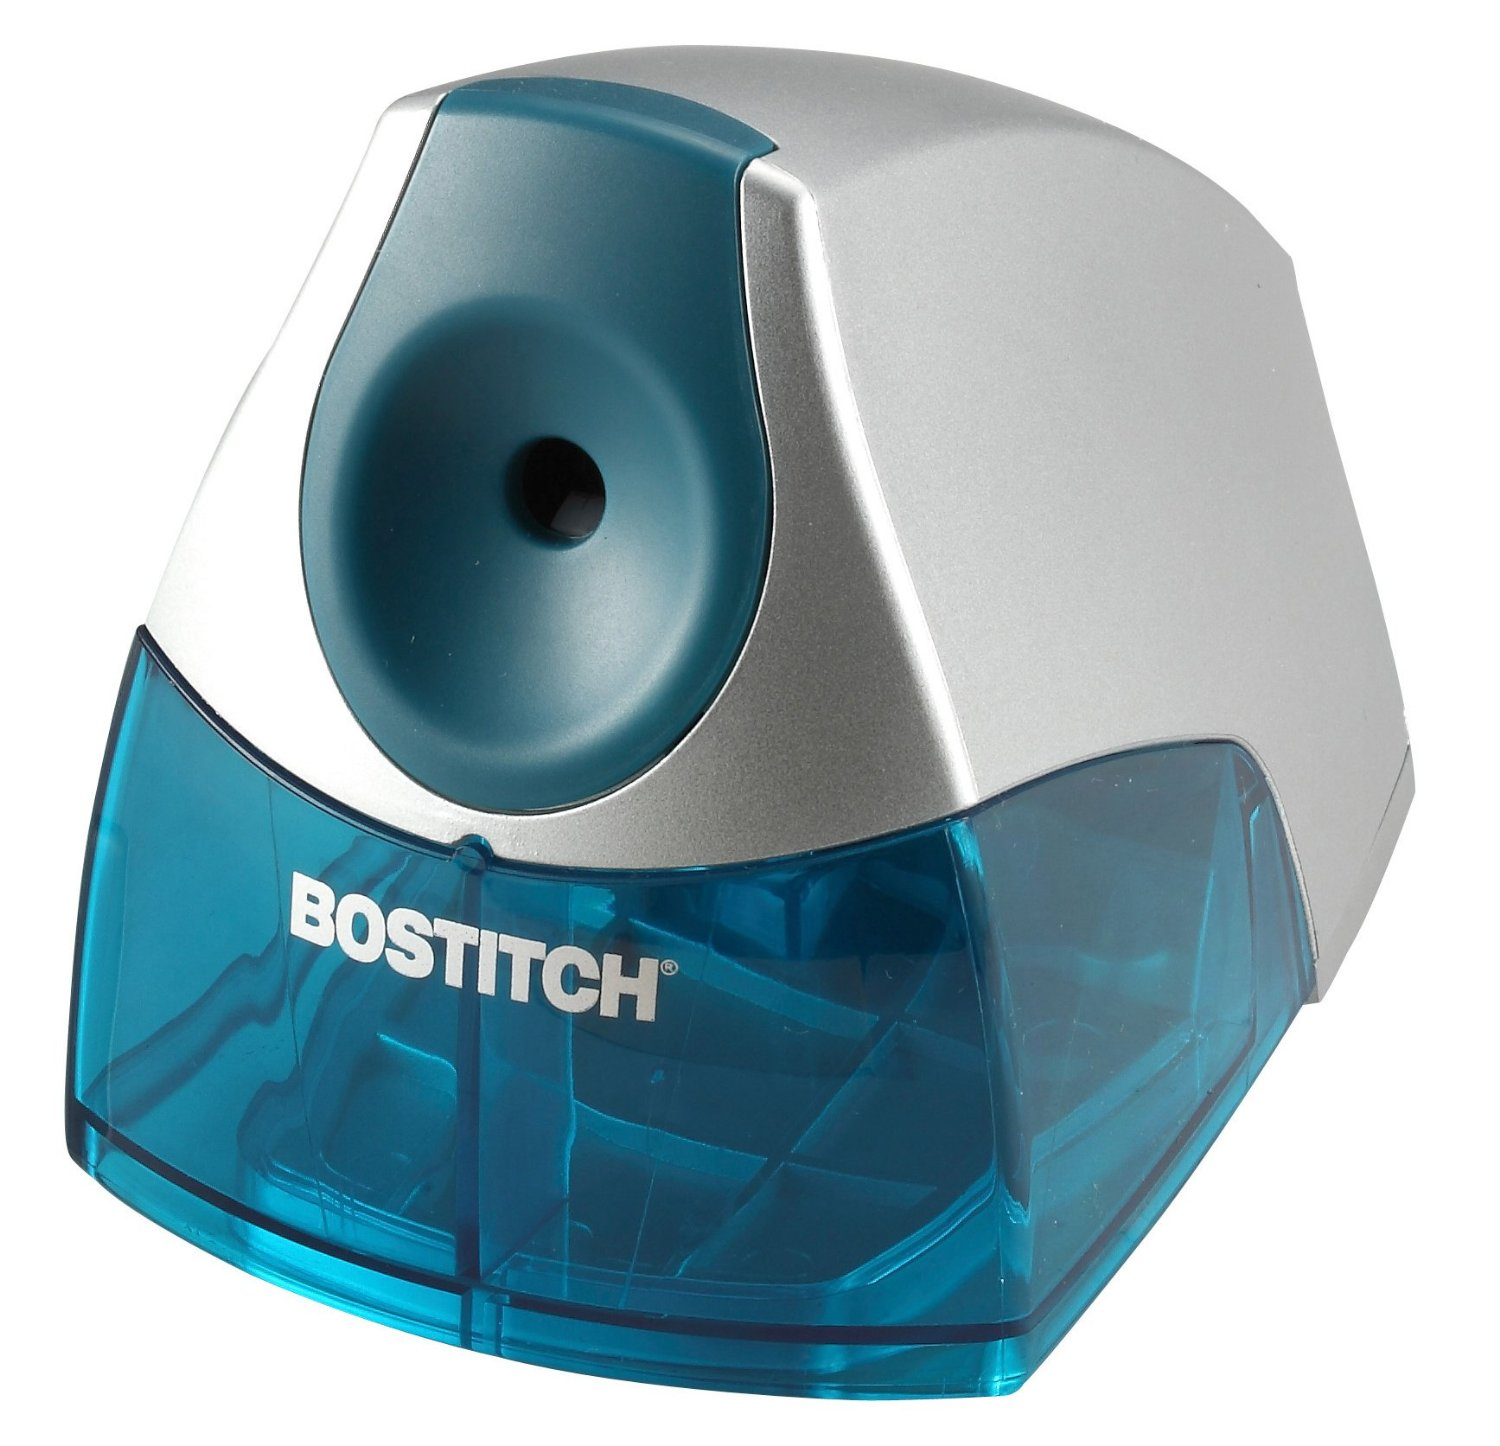 Bostitch® Personal Electric Pencil Sharpener